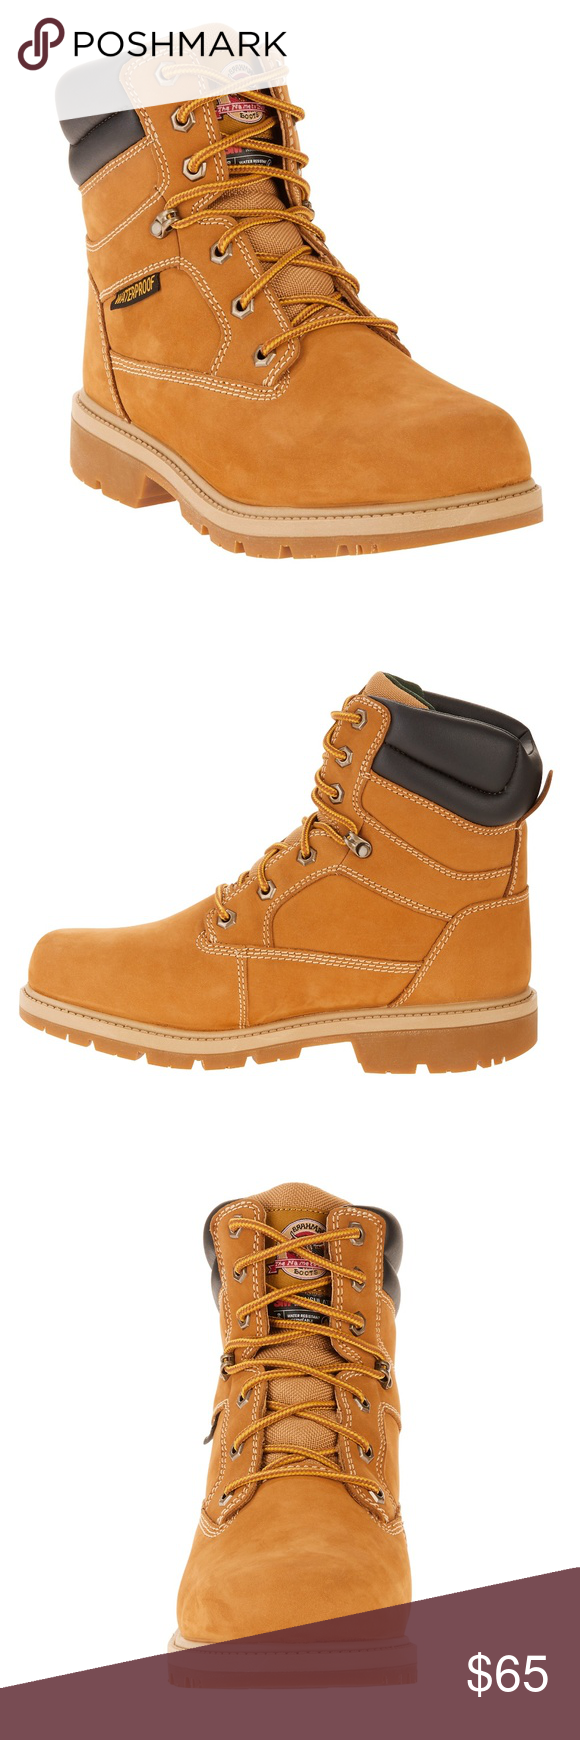 b width slip on work boots - 52% remise